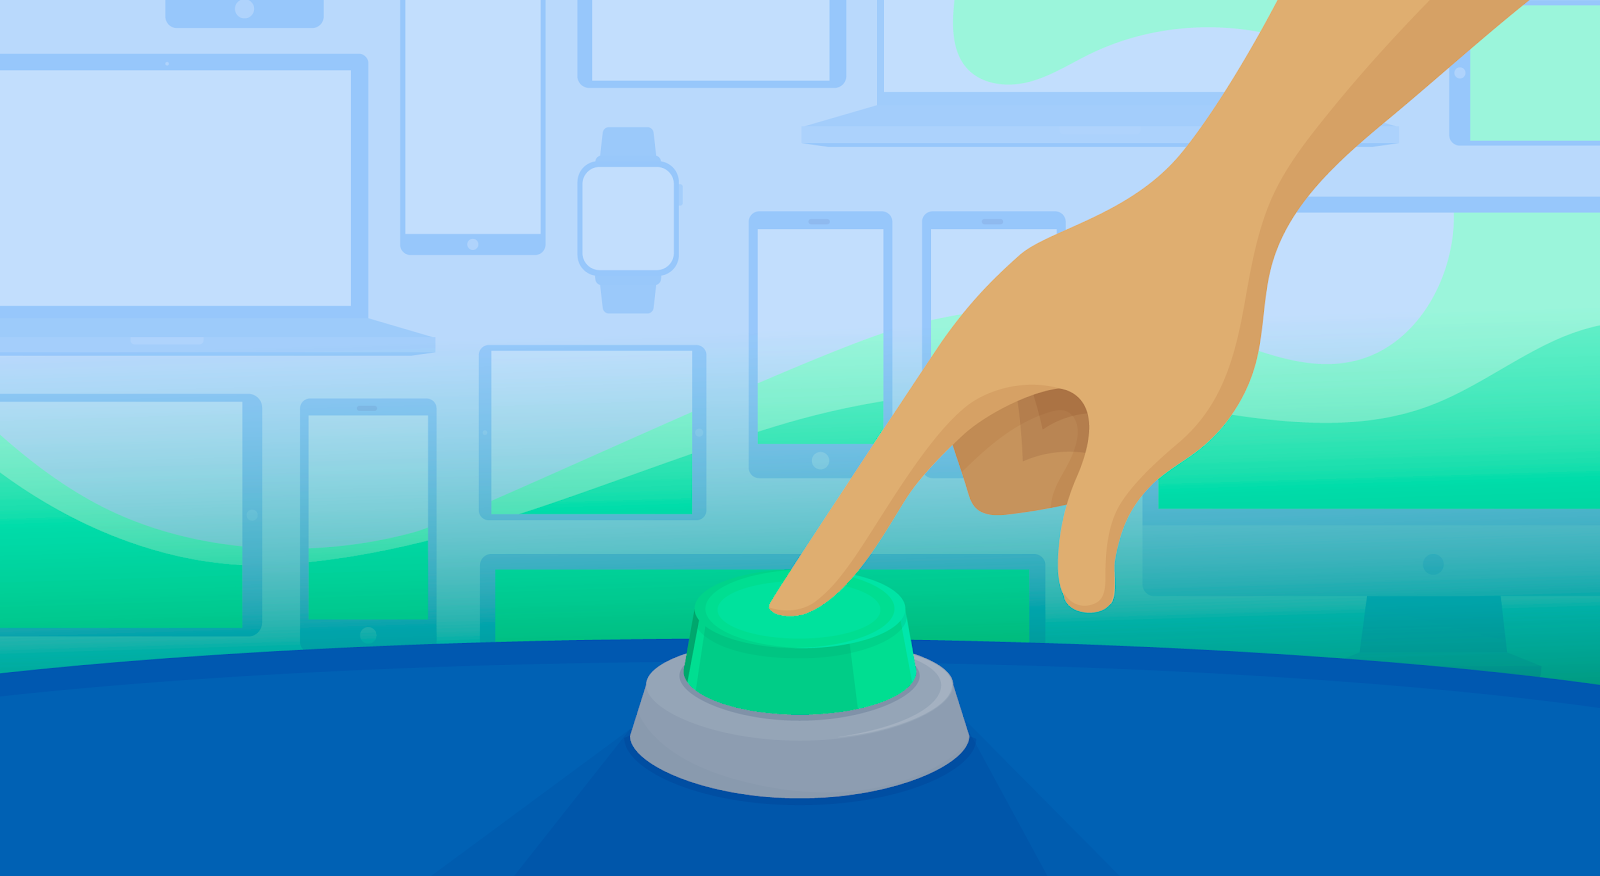 An illustration of a finger pushing a green button.